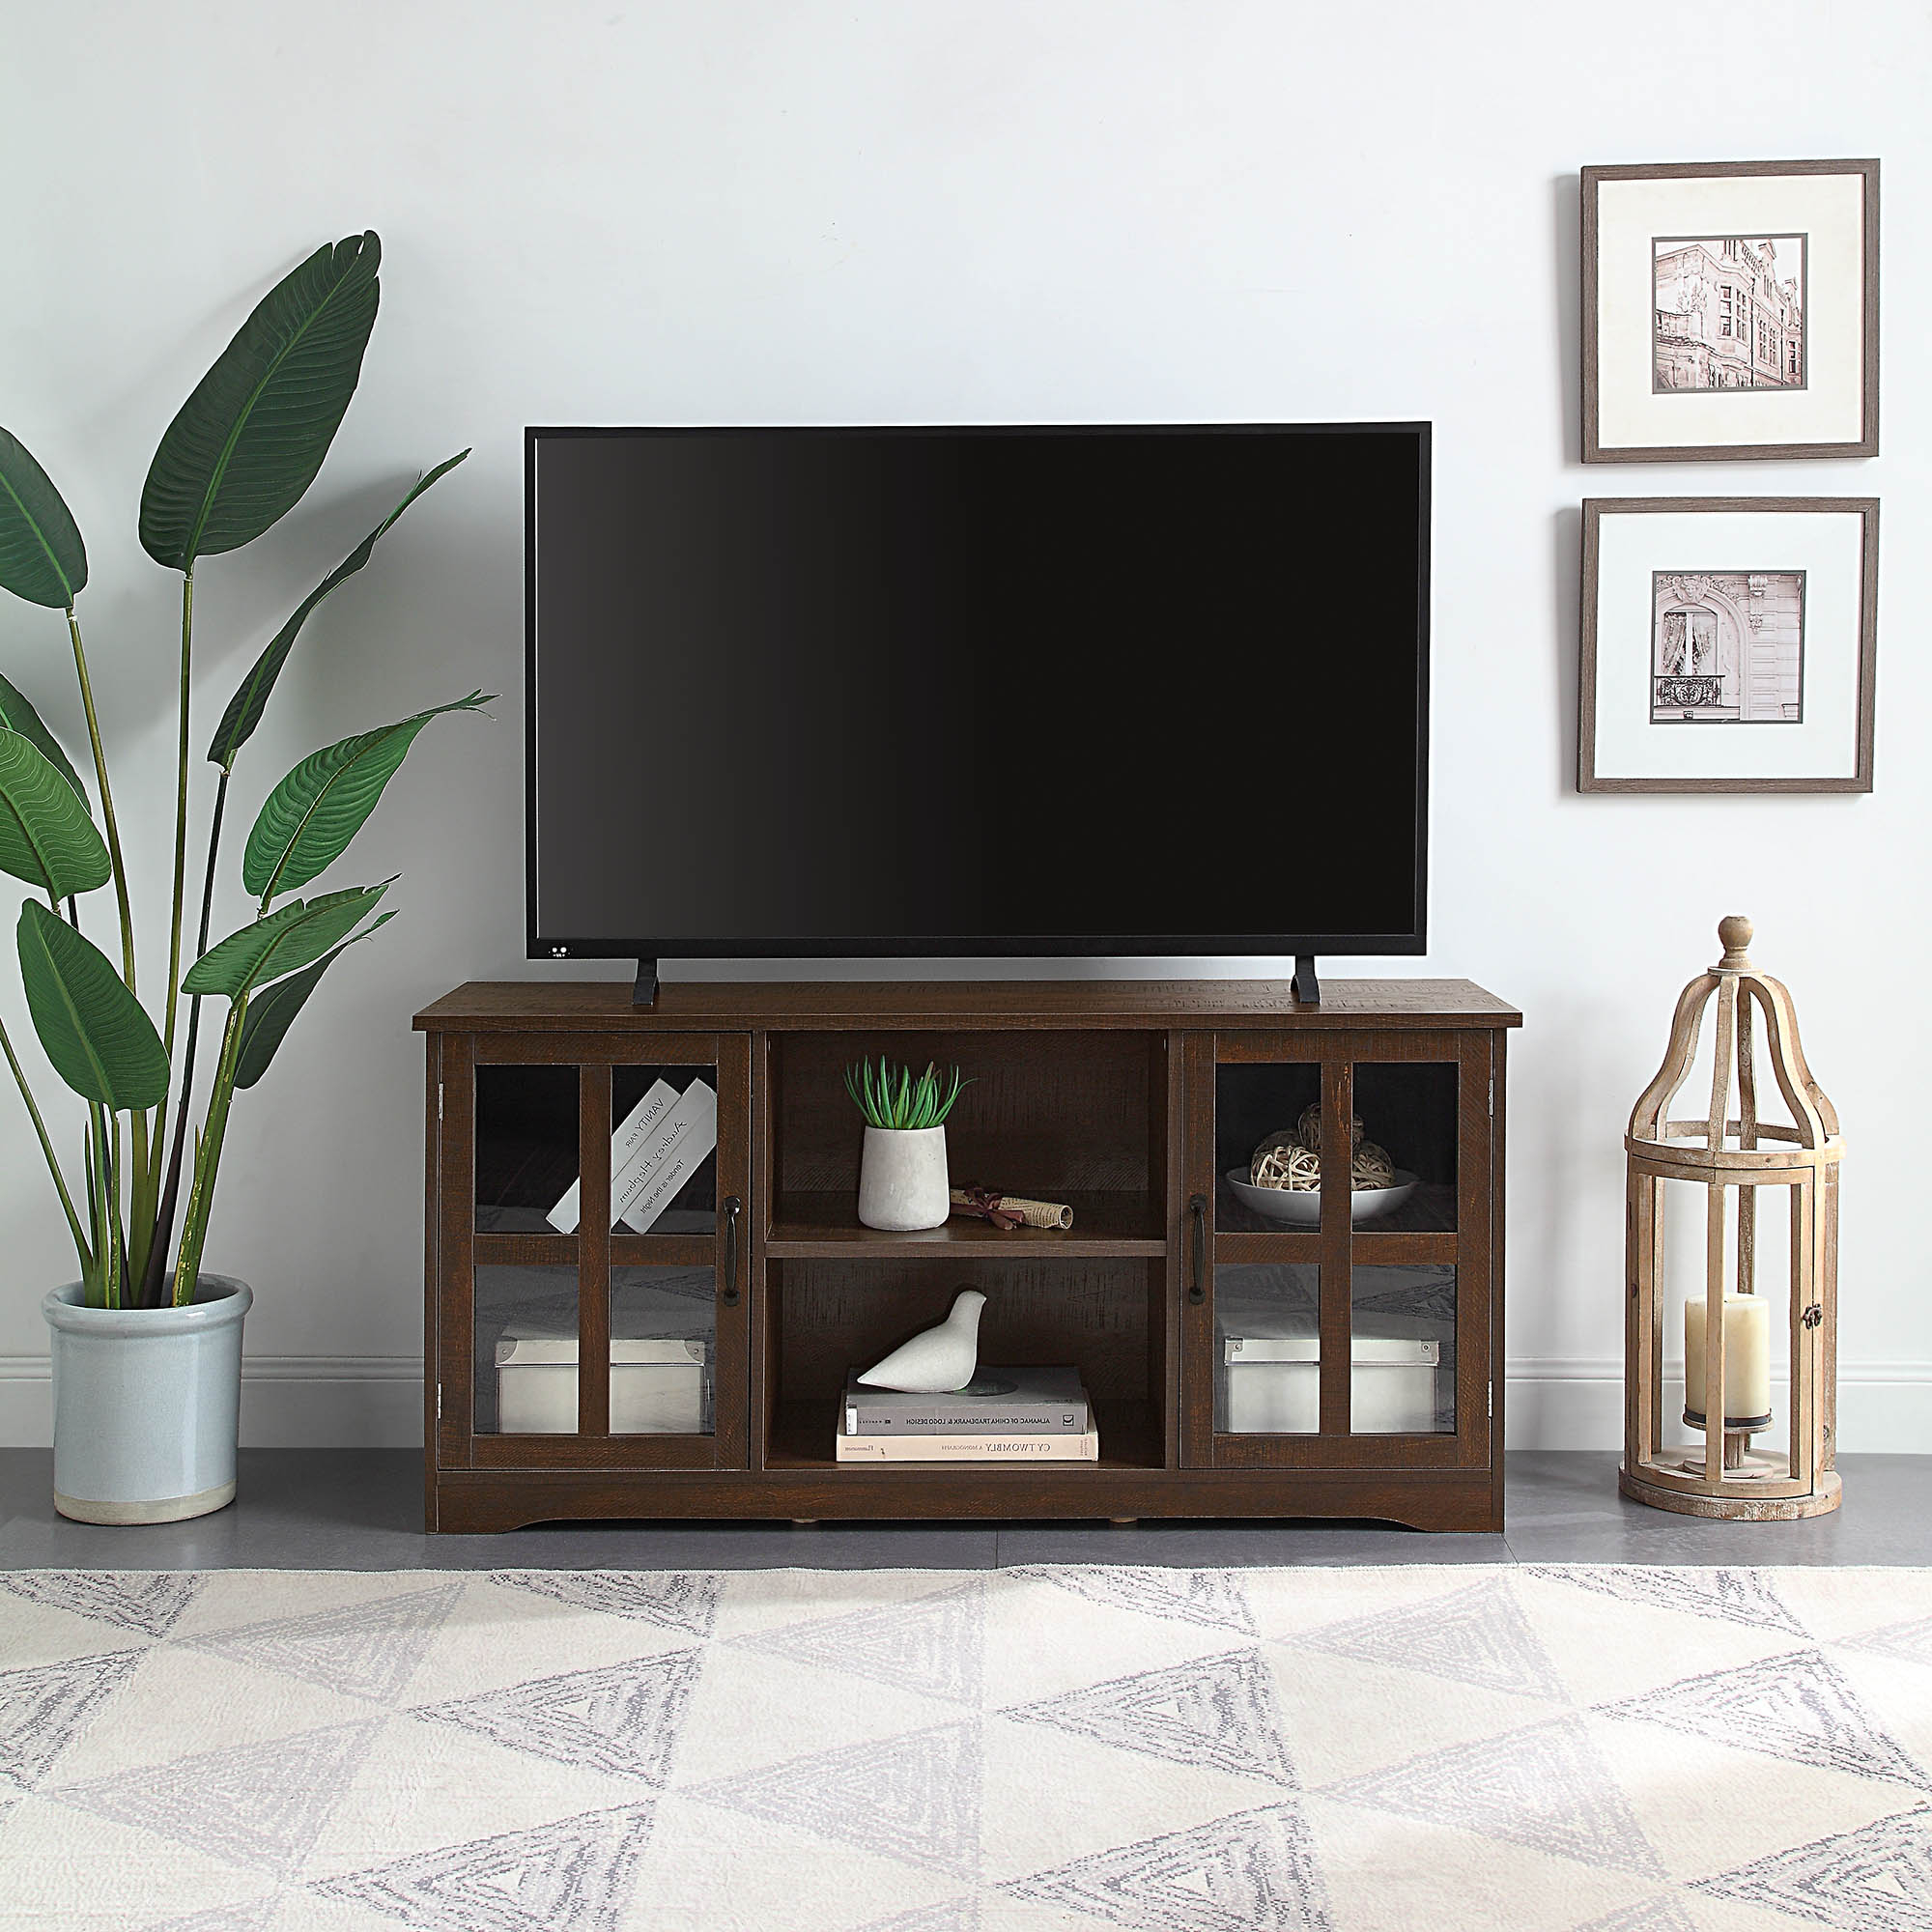 """Ebay Pertaining To Most Popular Ahana Tv Stands For Tvs Up To 60"""" (View 13 of 25)"""